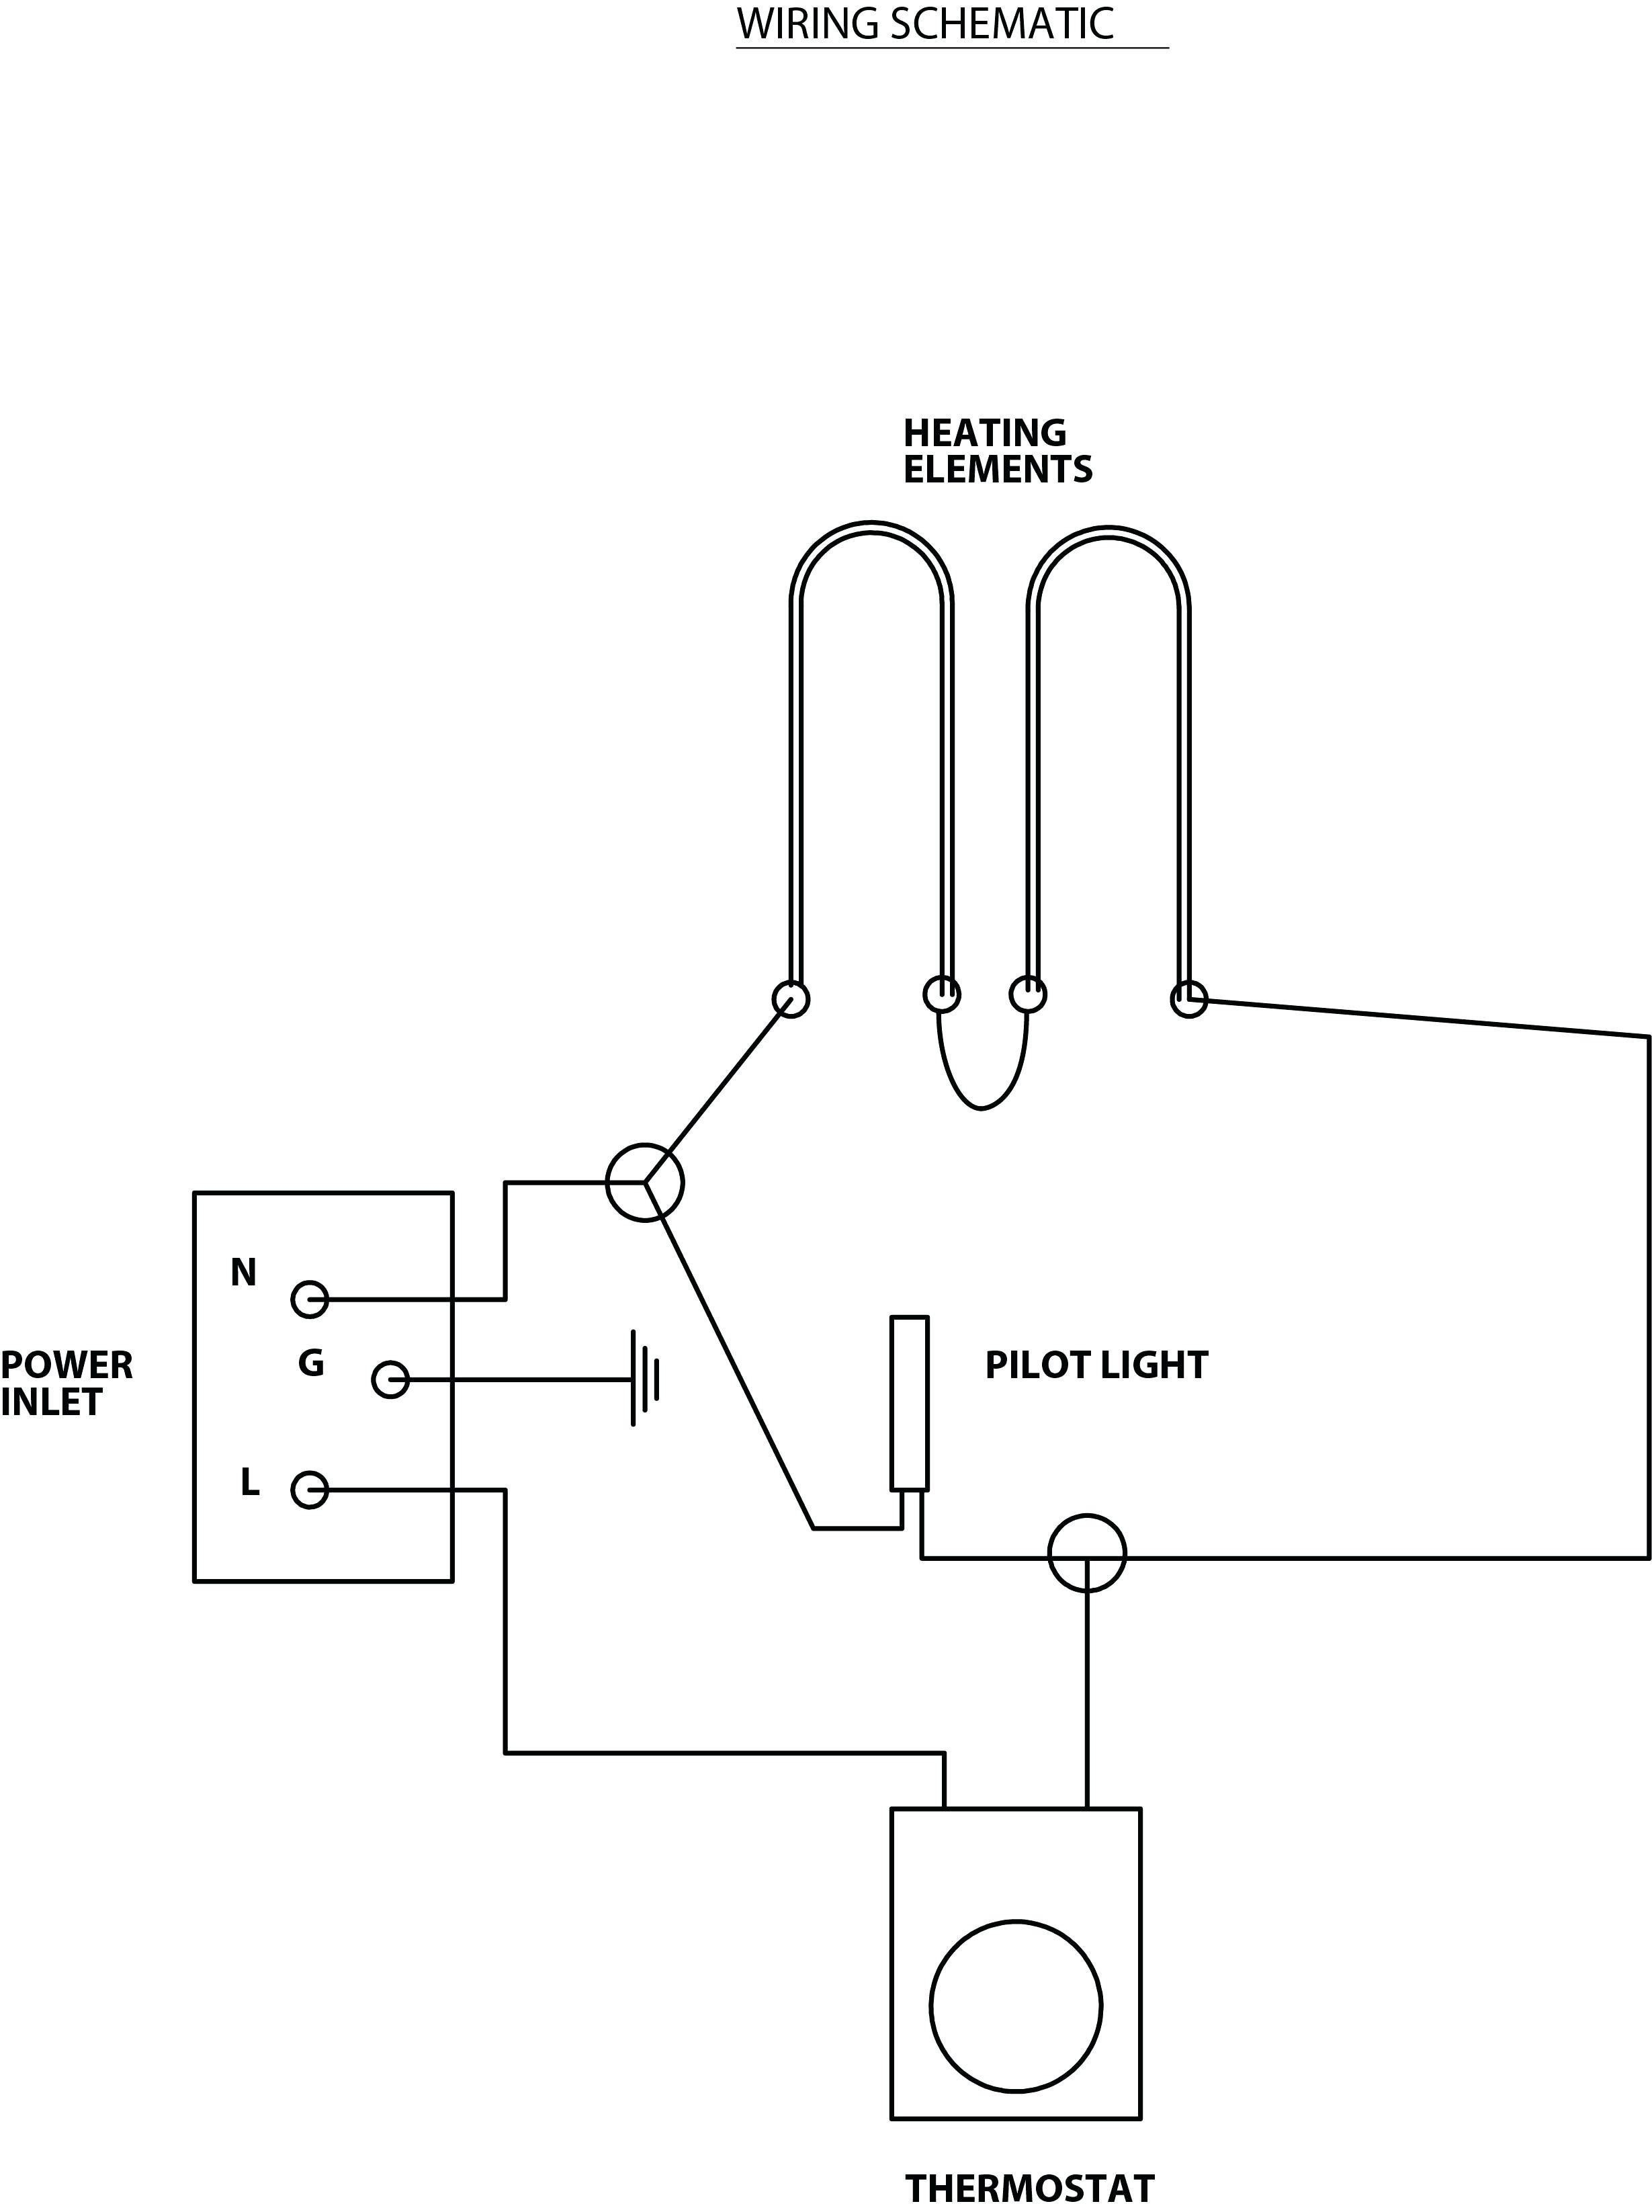 Luxaire Wiring Diagrams | Wiring Diagram on